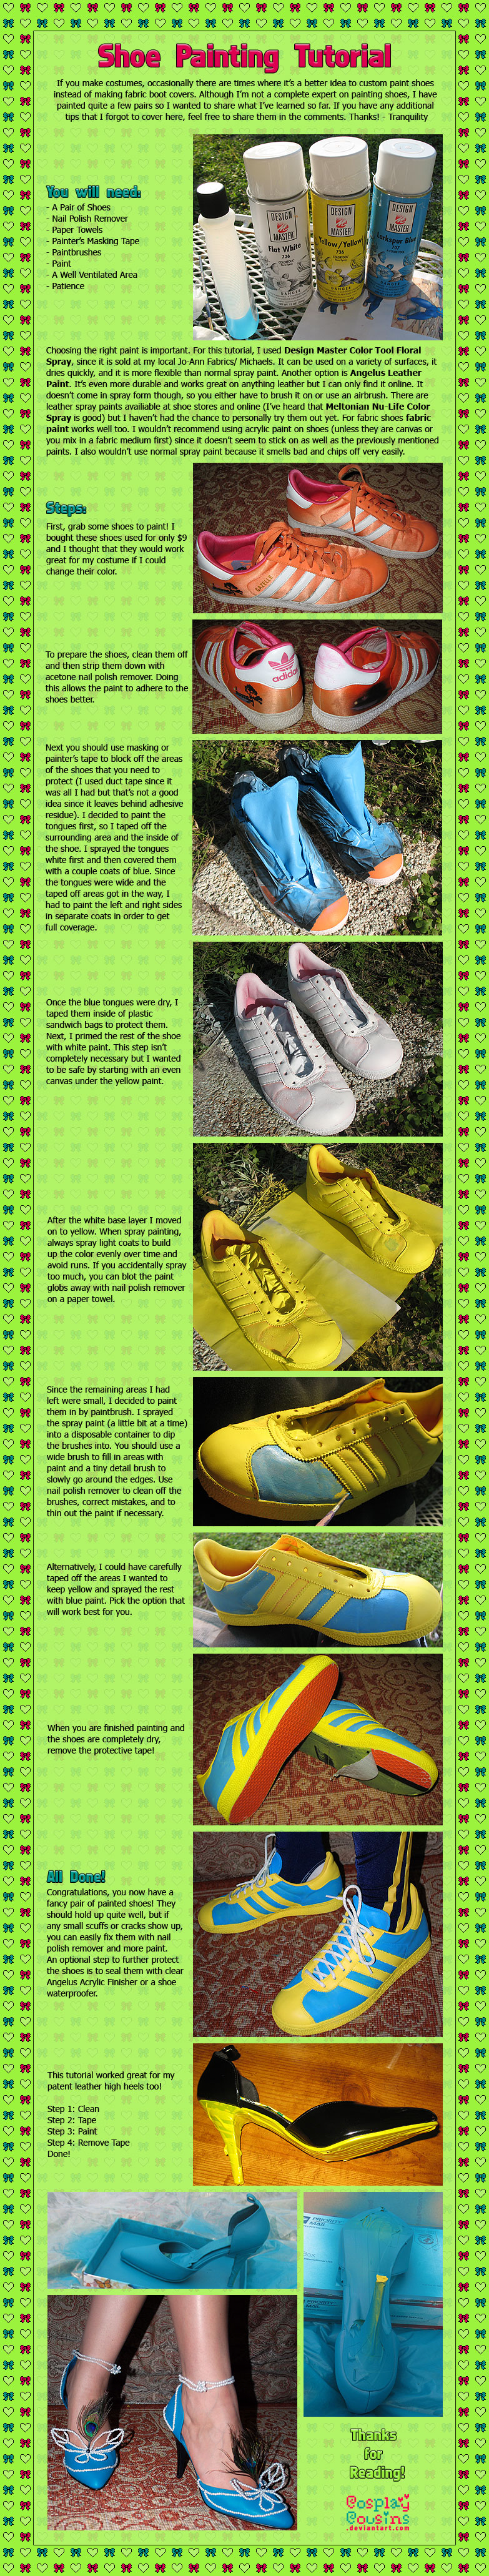 shoes painting tutorial